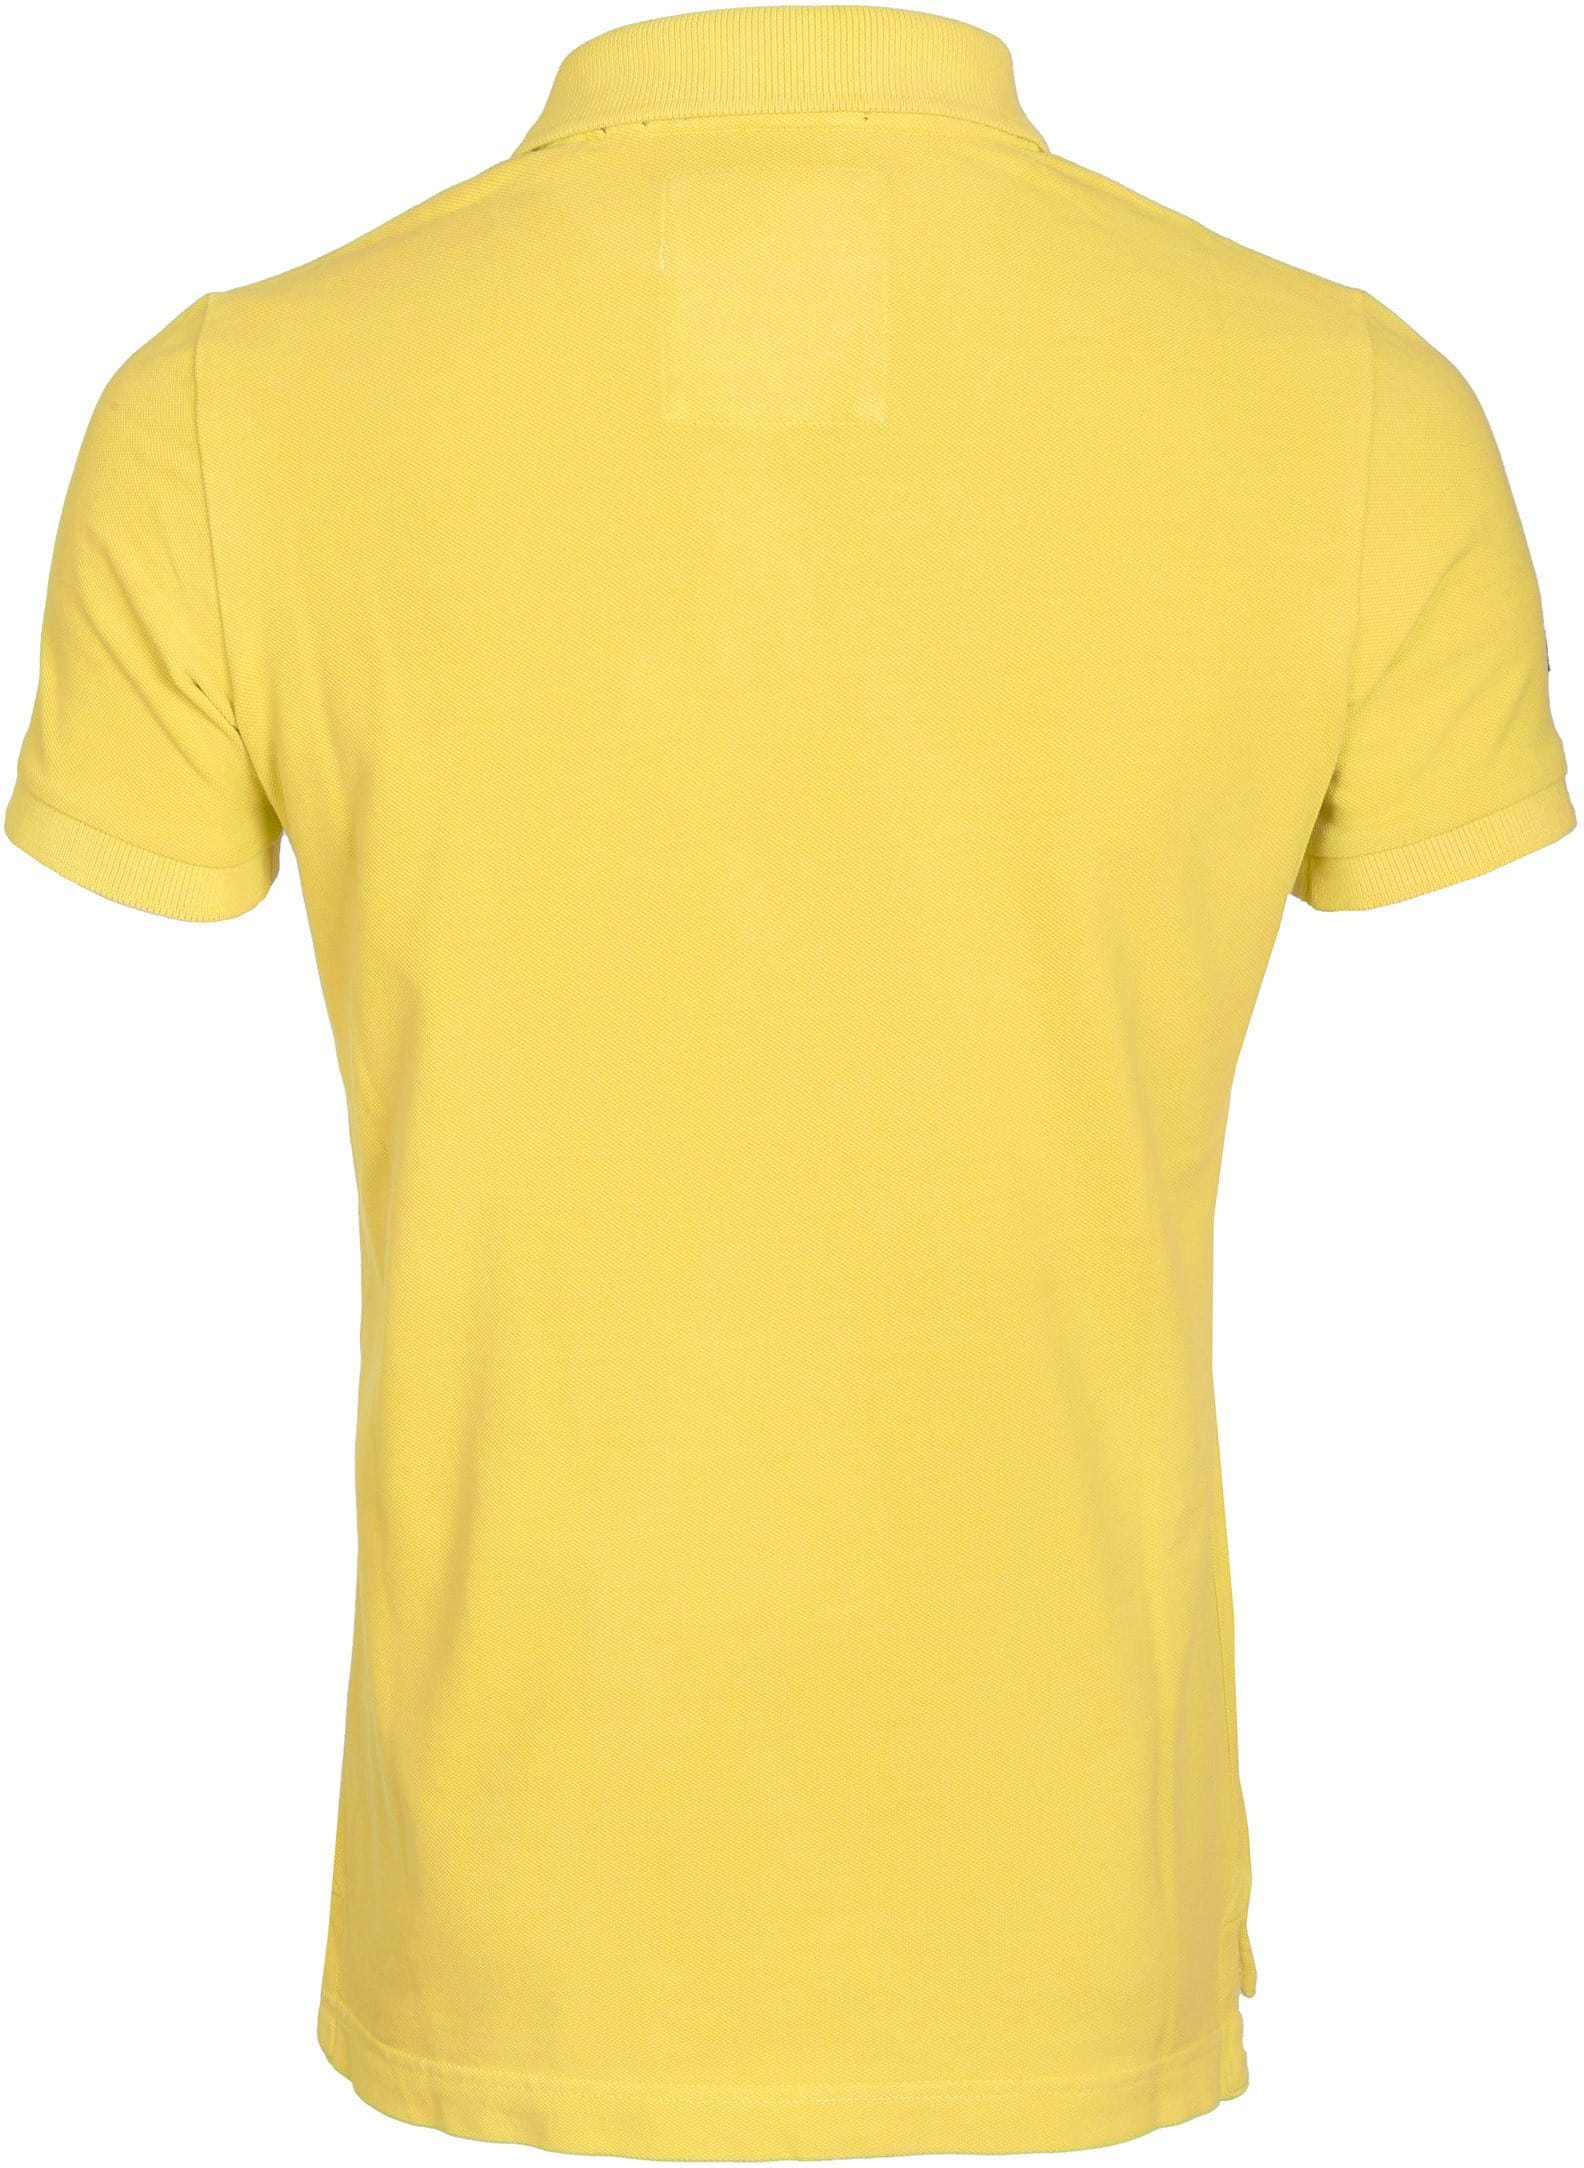 Superdry Vintage Destroyed Polo Yellow foto 3